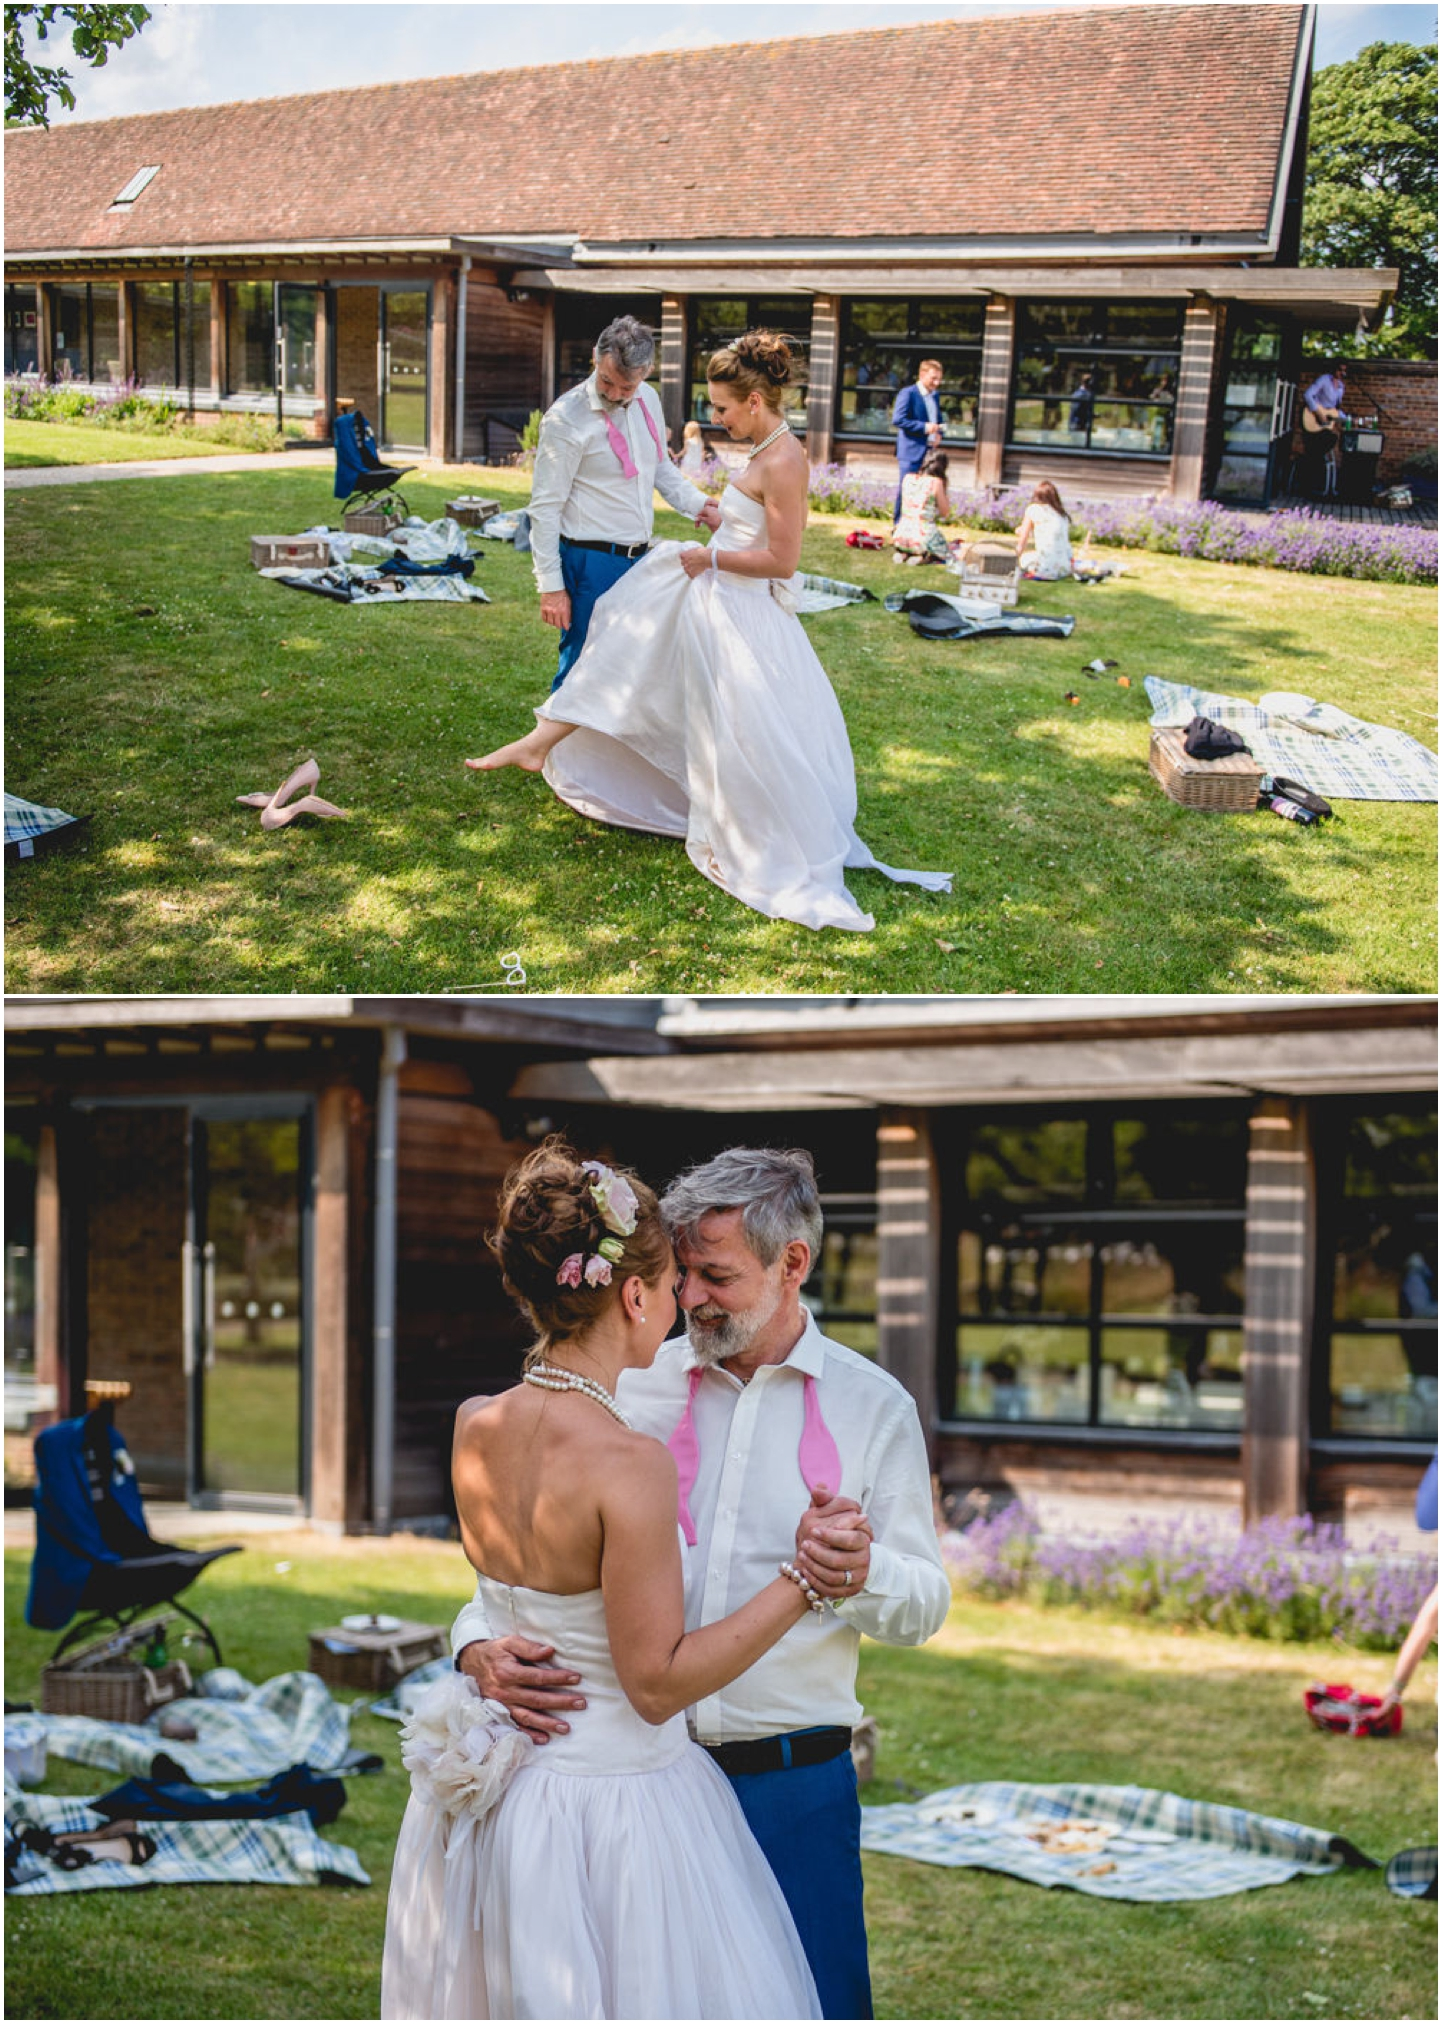 Daniella and Mark Wedding at Blakesley Hall in Birmingham, West Midlands by Lisa Carpenter Photography, Sutton Coldfield based wedding photographer